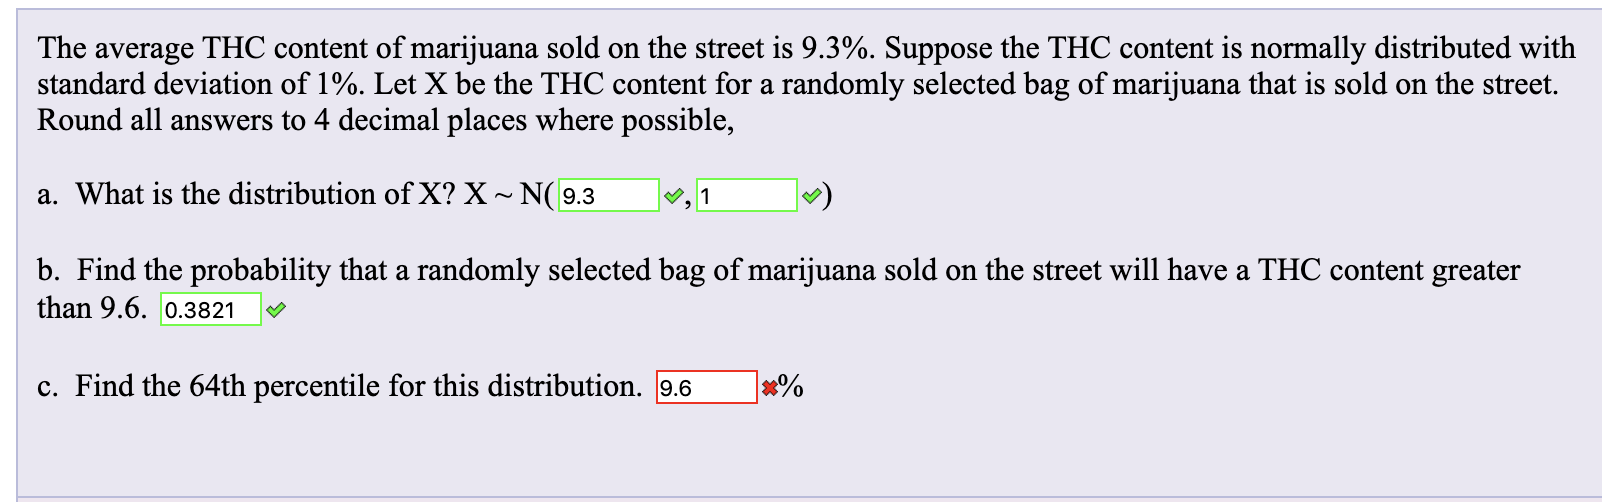 The average THC content of marijuana sold on the street is 9.3%. Suppose the THC content is normally distributed with standard deviation of 1%. Let X be the THC content for a randomly selected bag of marijuana that is sold on the street. Round all answers to 4 decimal places where possible, a. What is the distribution of X? X ~ N(9.3 |, 1 b. Find the probability that a randomly selected bag of marijuana sold on the street will have a THC content greater than 9.6. 0.3821 c. Find the 64th percentile for this distribution. 9.6 x%